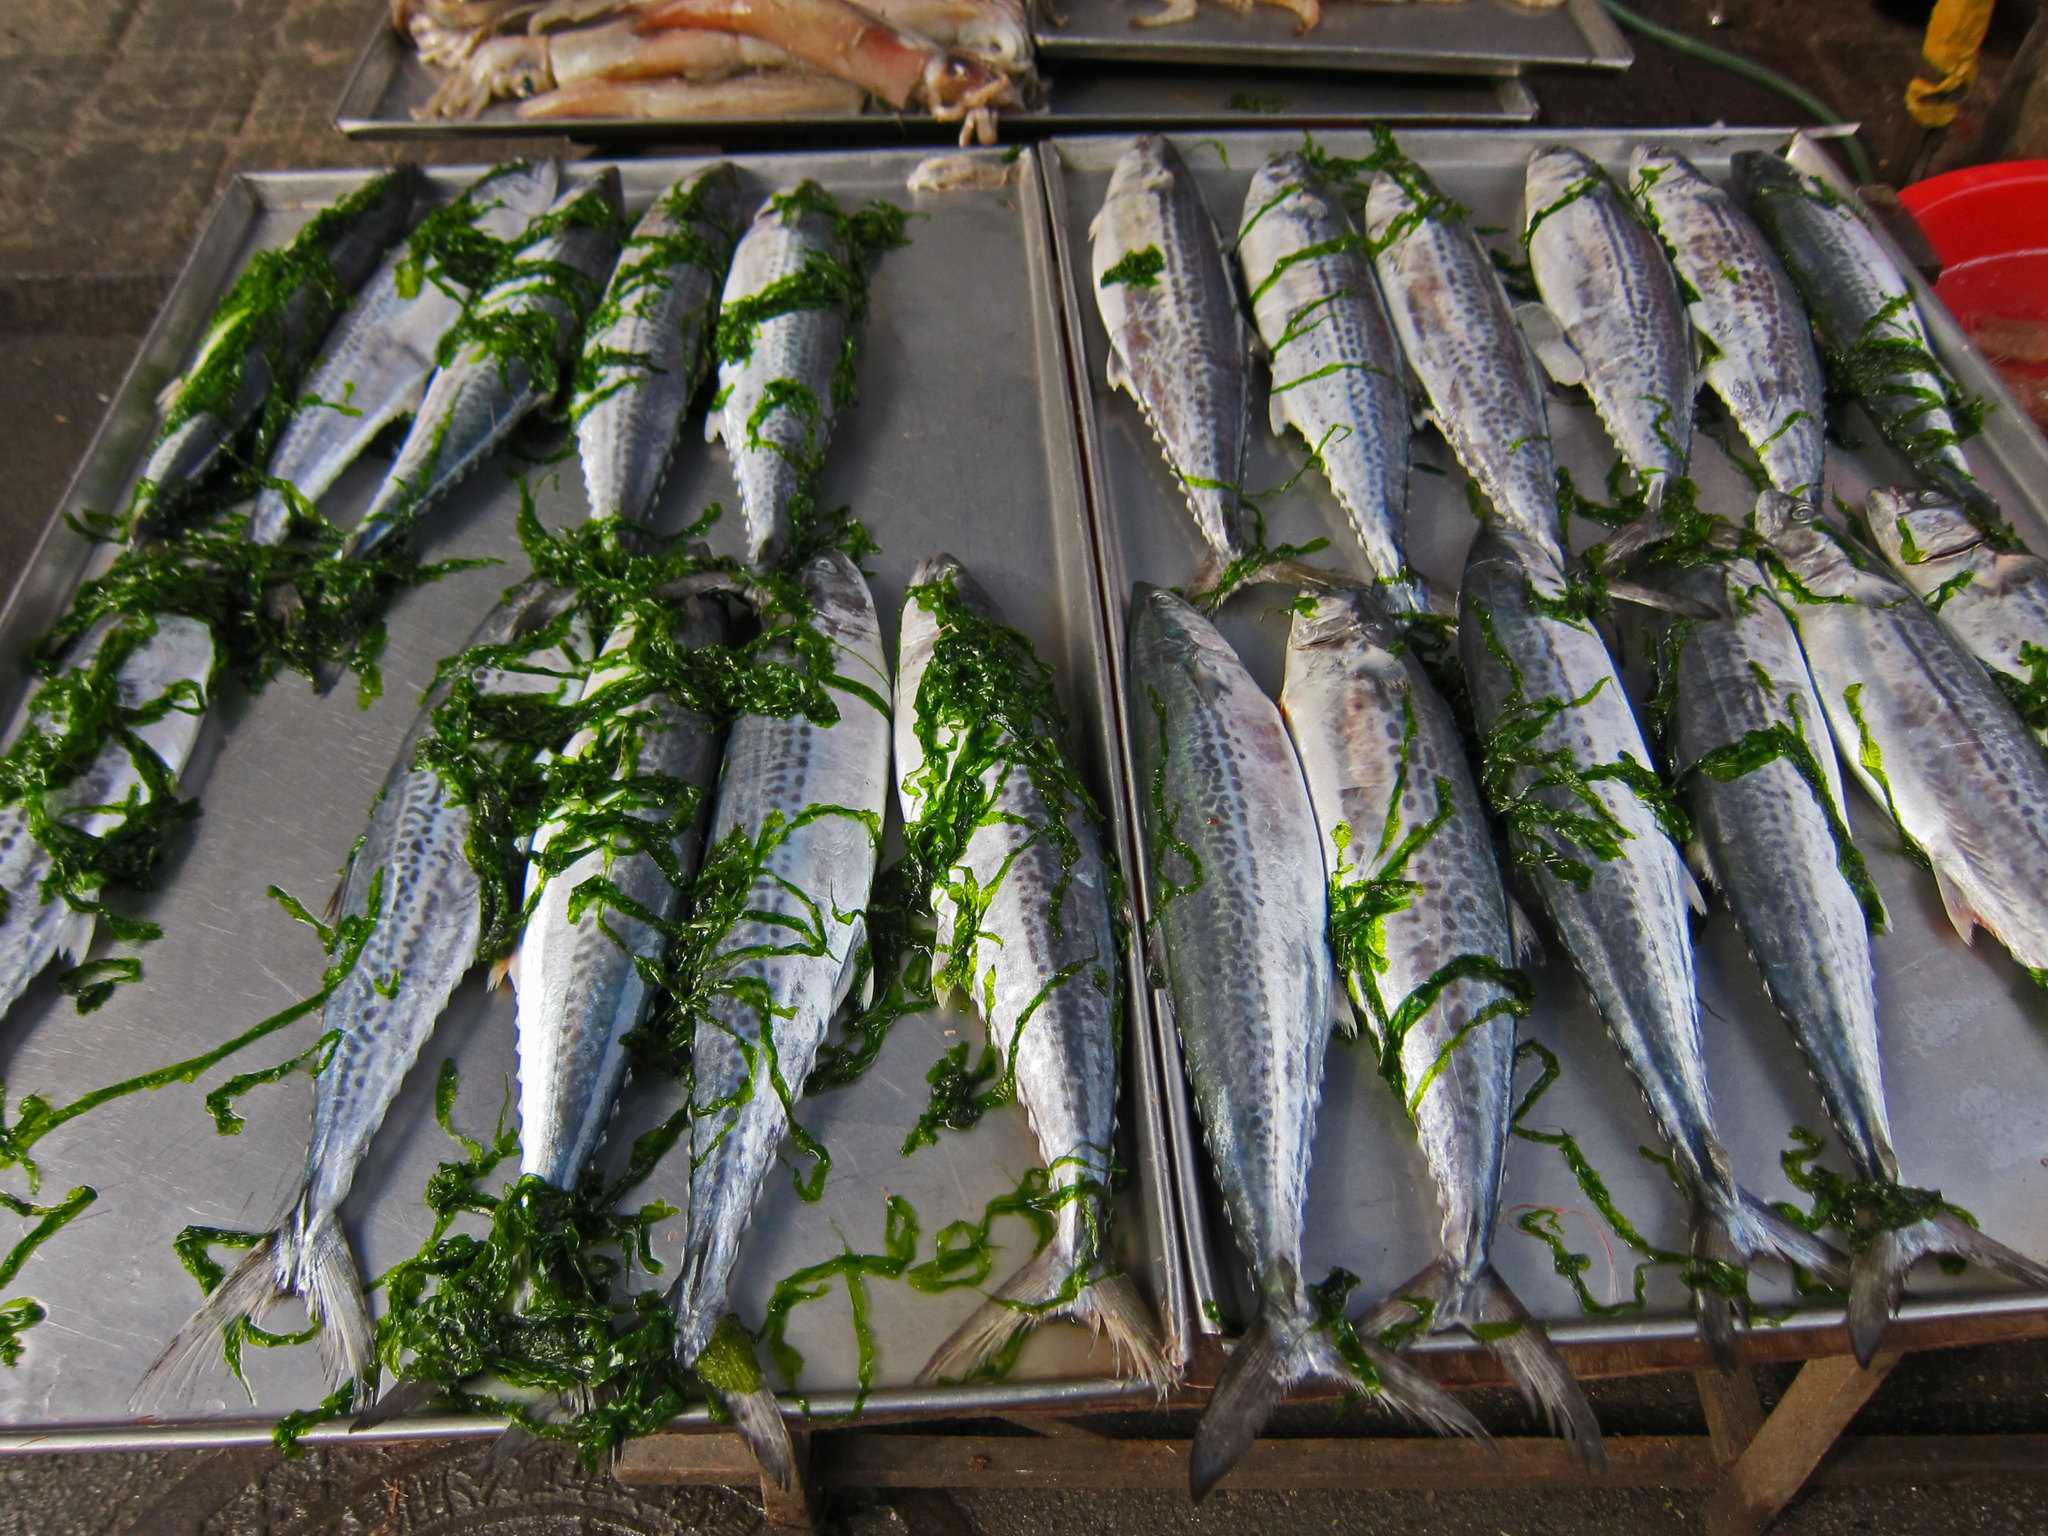 Outdoor fish market in qingdao flickr photo sharing for Bud s fish market